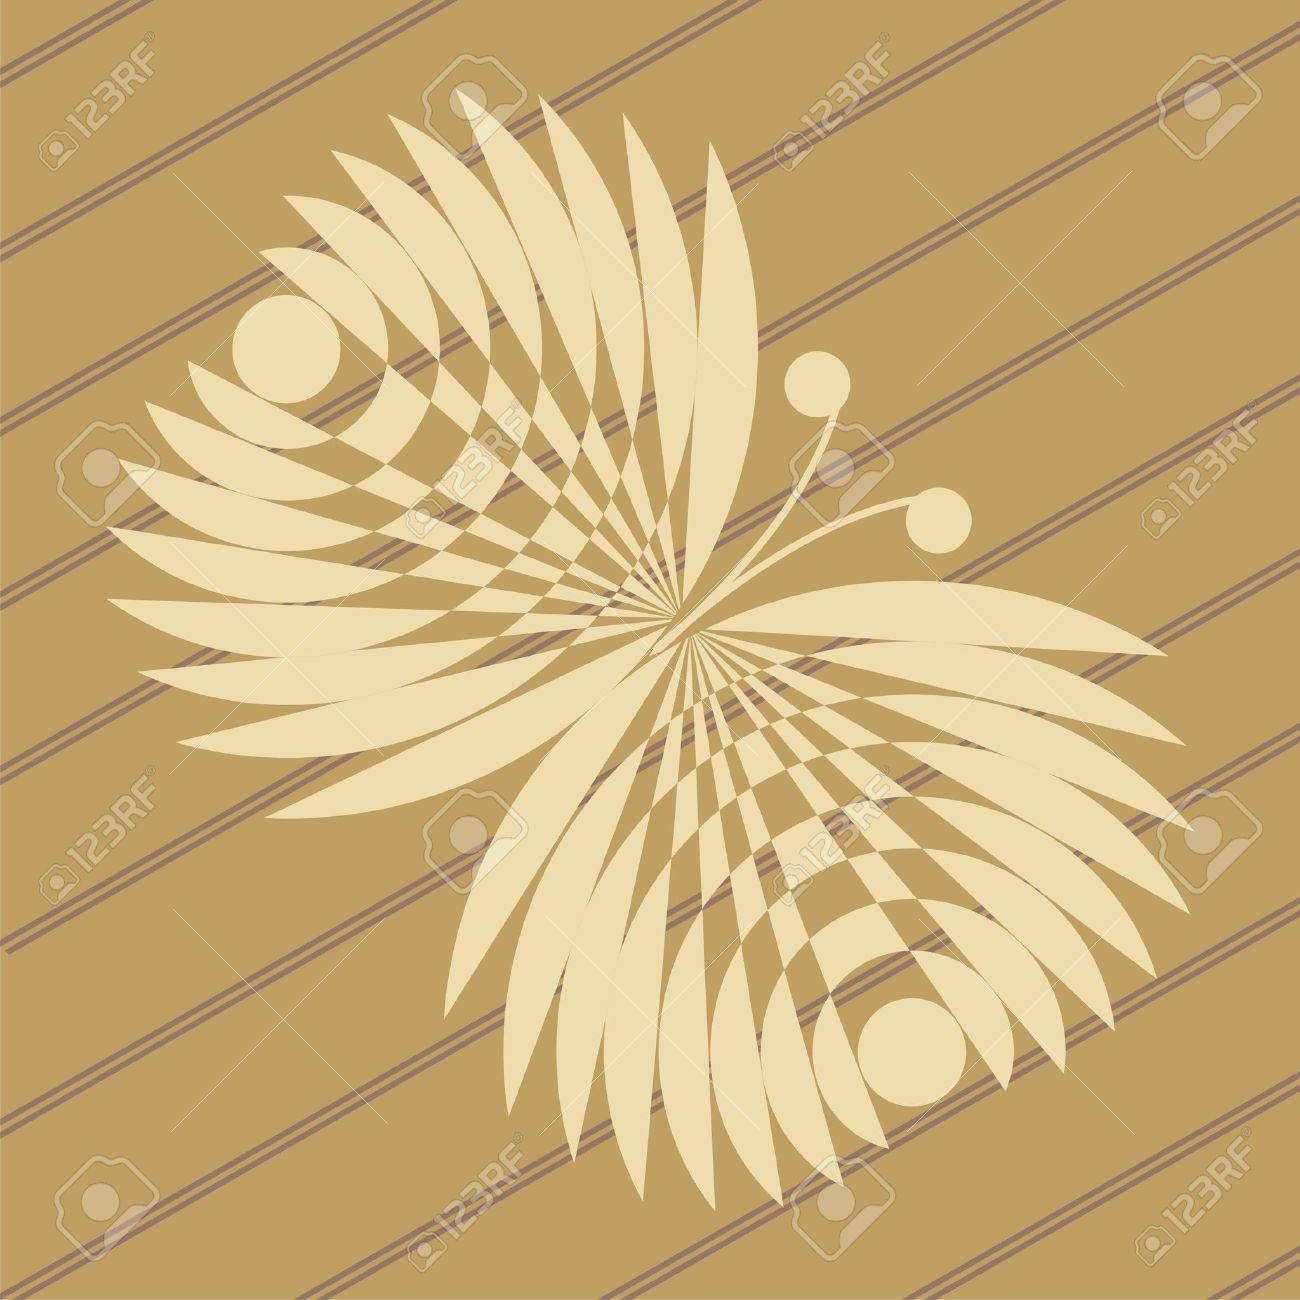 ufo crop circles design in wheat/corn fields Stock Vector - 12431692